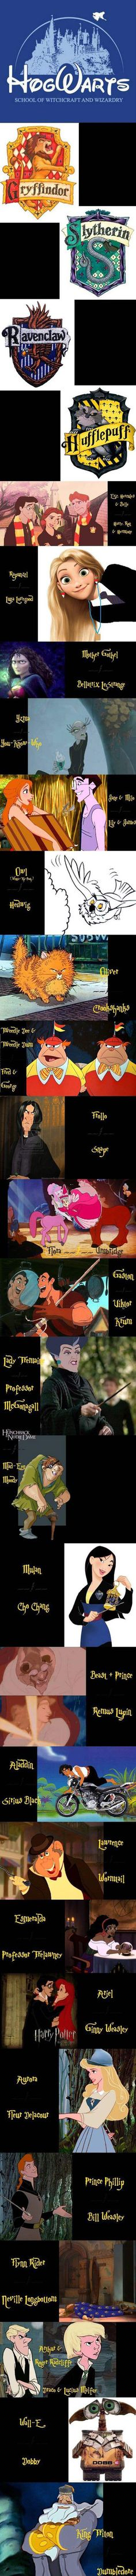 """If Harry Potter Was Made By Disney."" I can't even handle this."